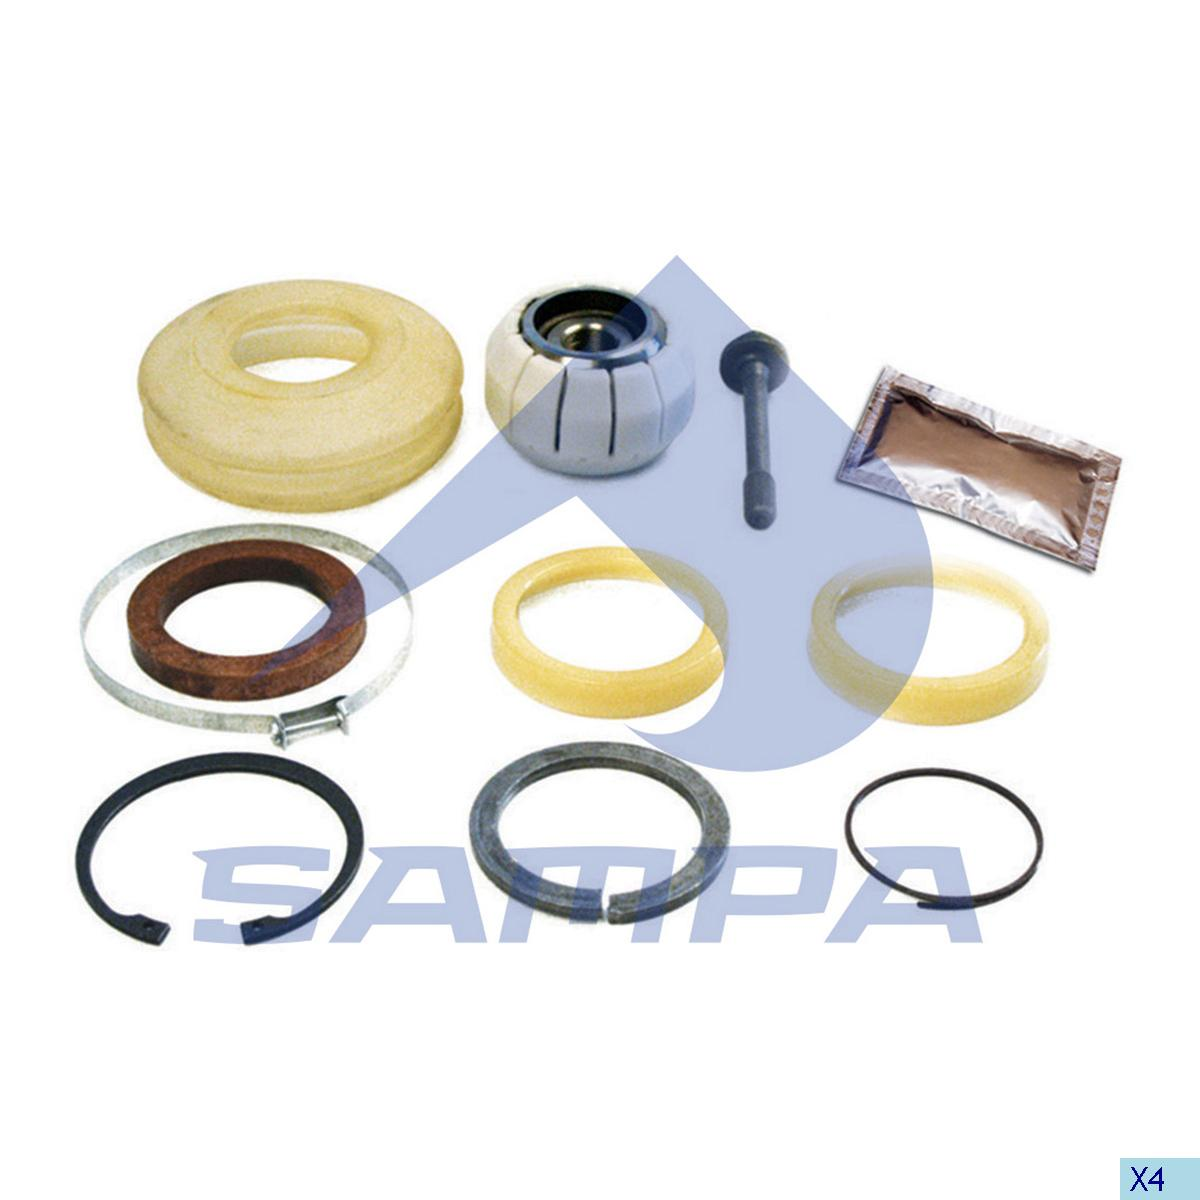 Repair Kit, Axle Rod, Man, Suspension